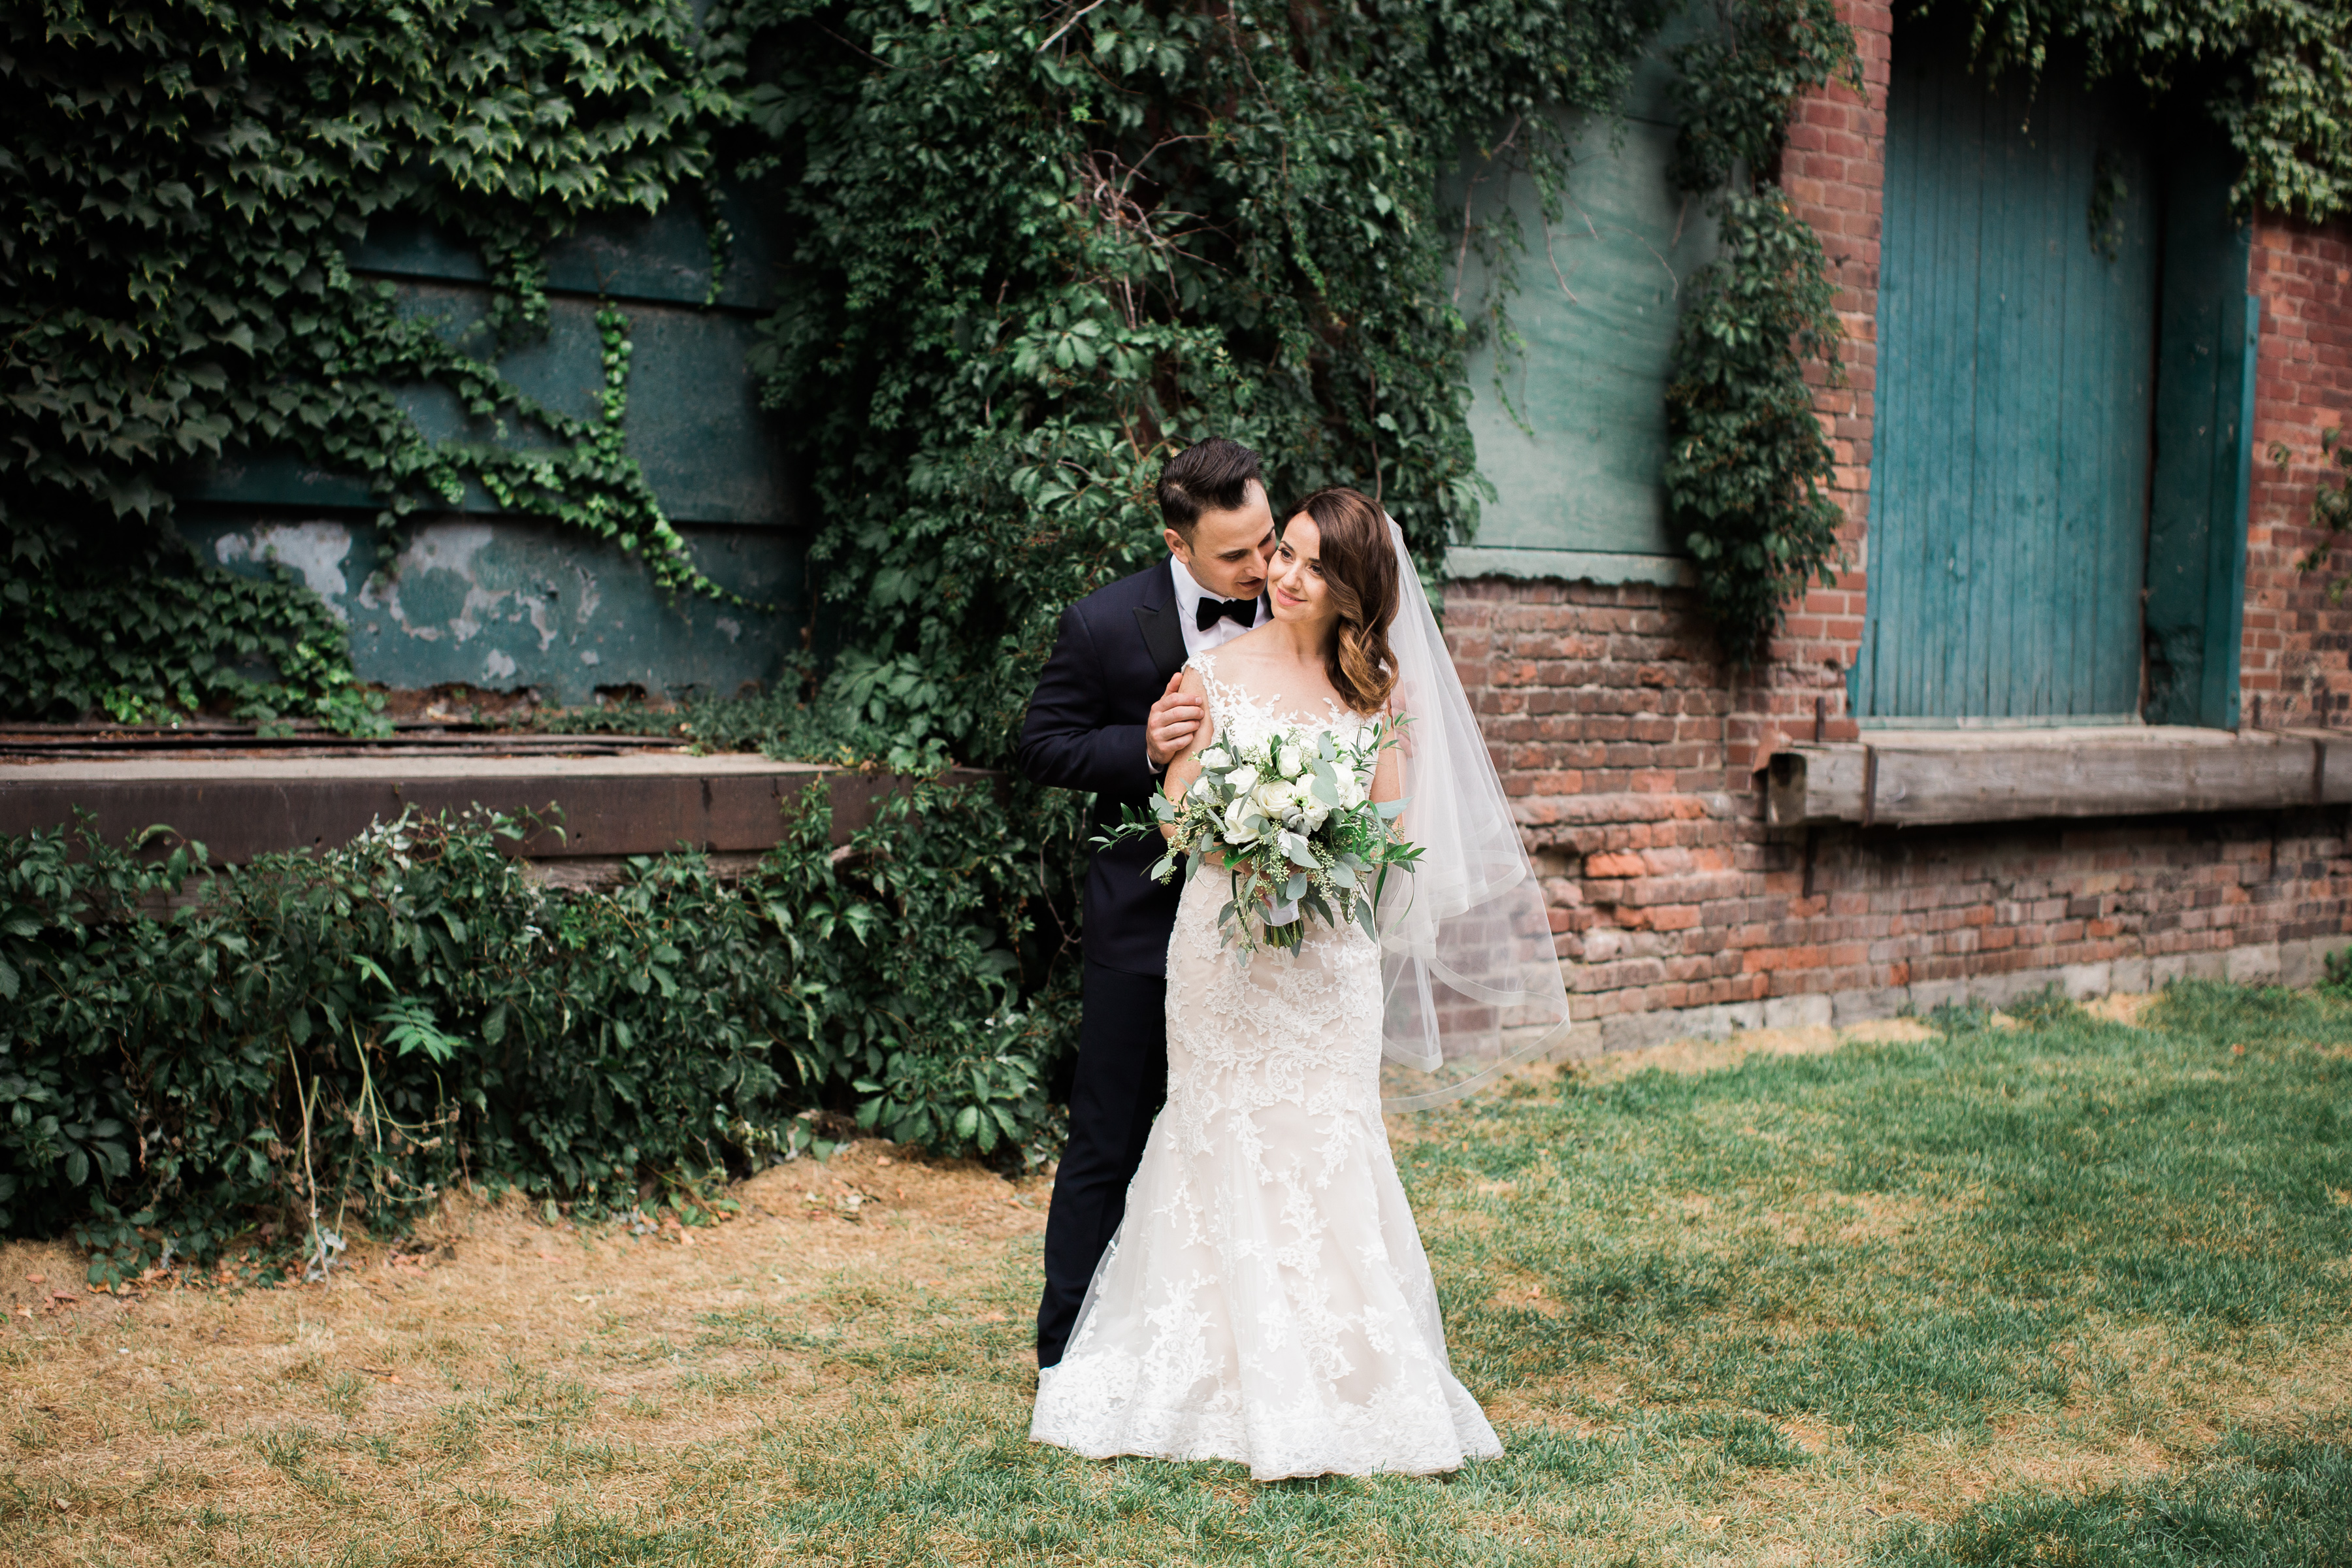 Bride and groom at Distillery District enjoying a quiet moment.